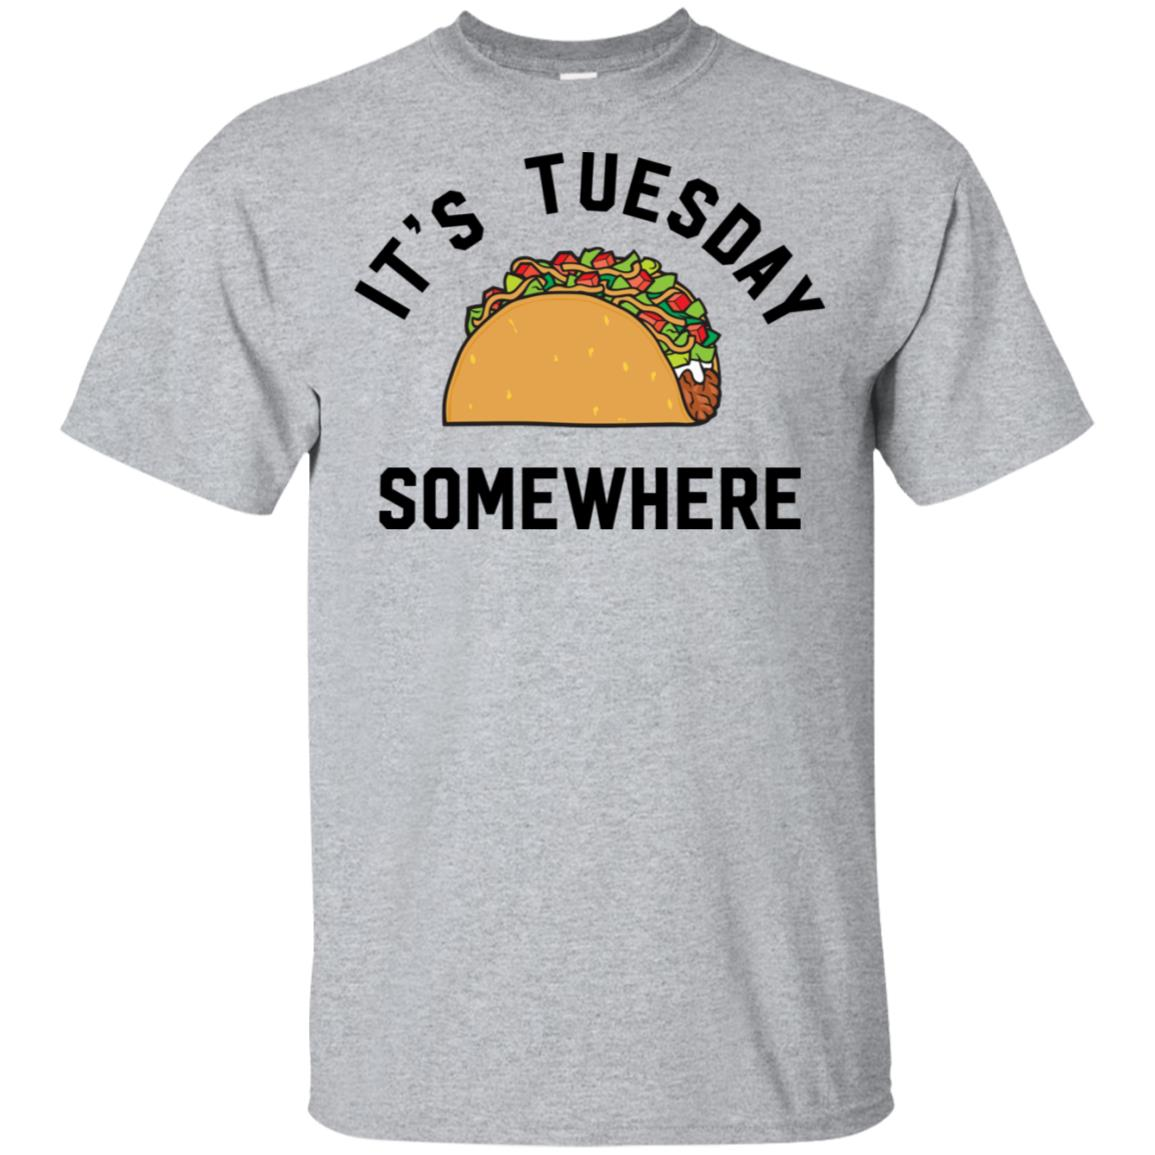 new product 67611 8248a LeBron James It's Tuesday somewhere taco shirt